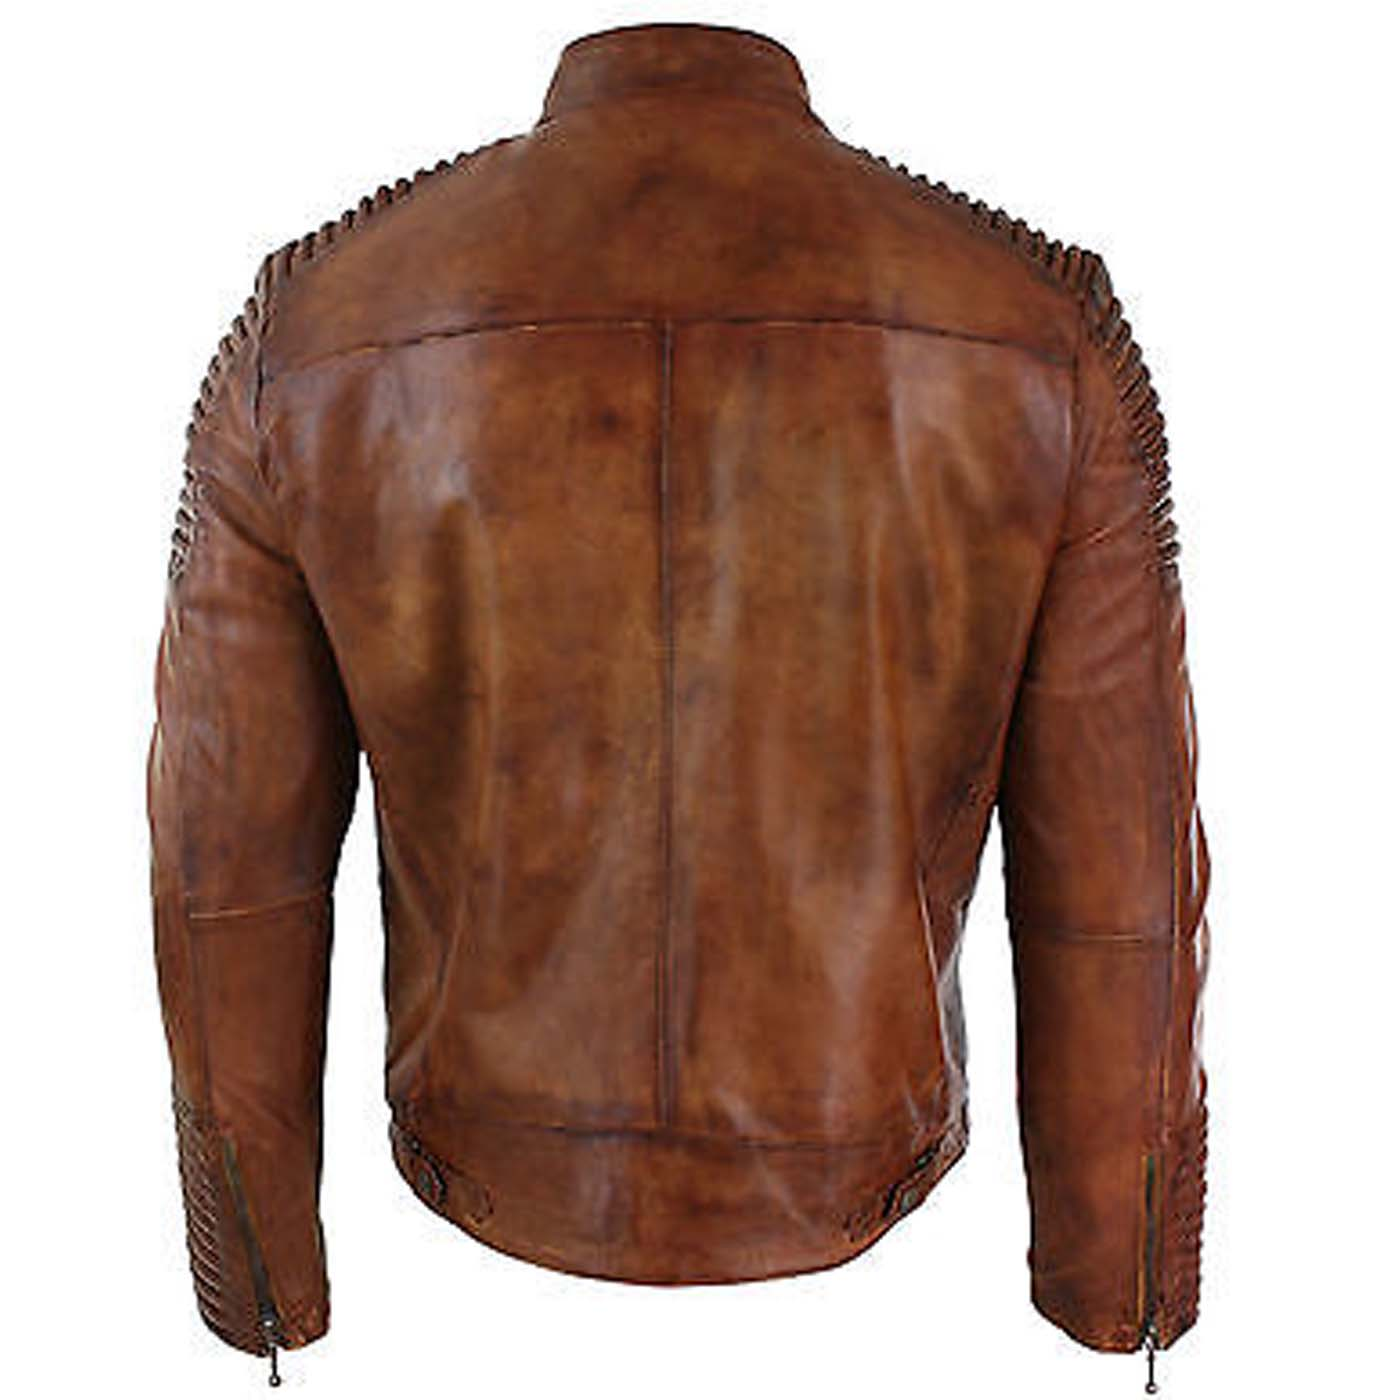 Mens-Biker-Vintage-Cafe-Racer-Wax-Distressed-Brown-Leather-Jacket-2-copy